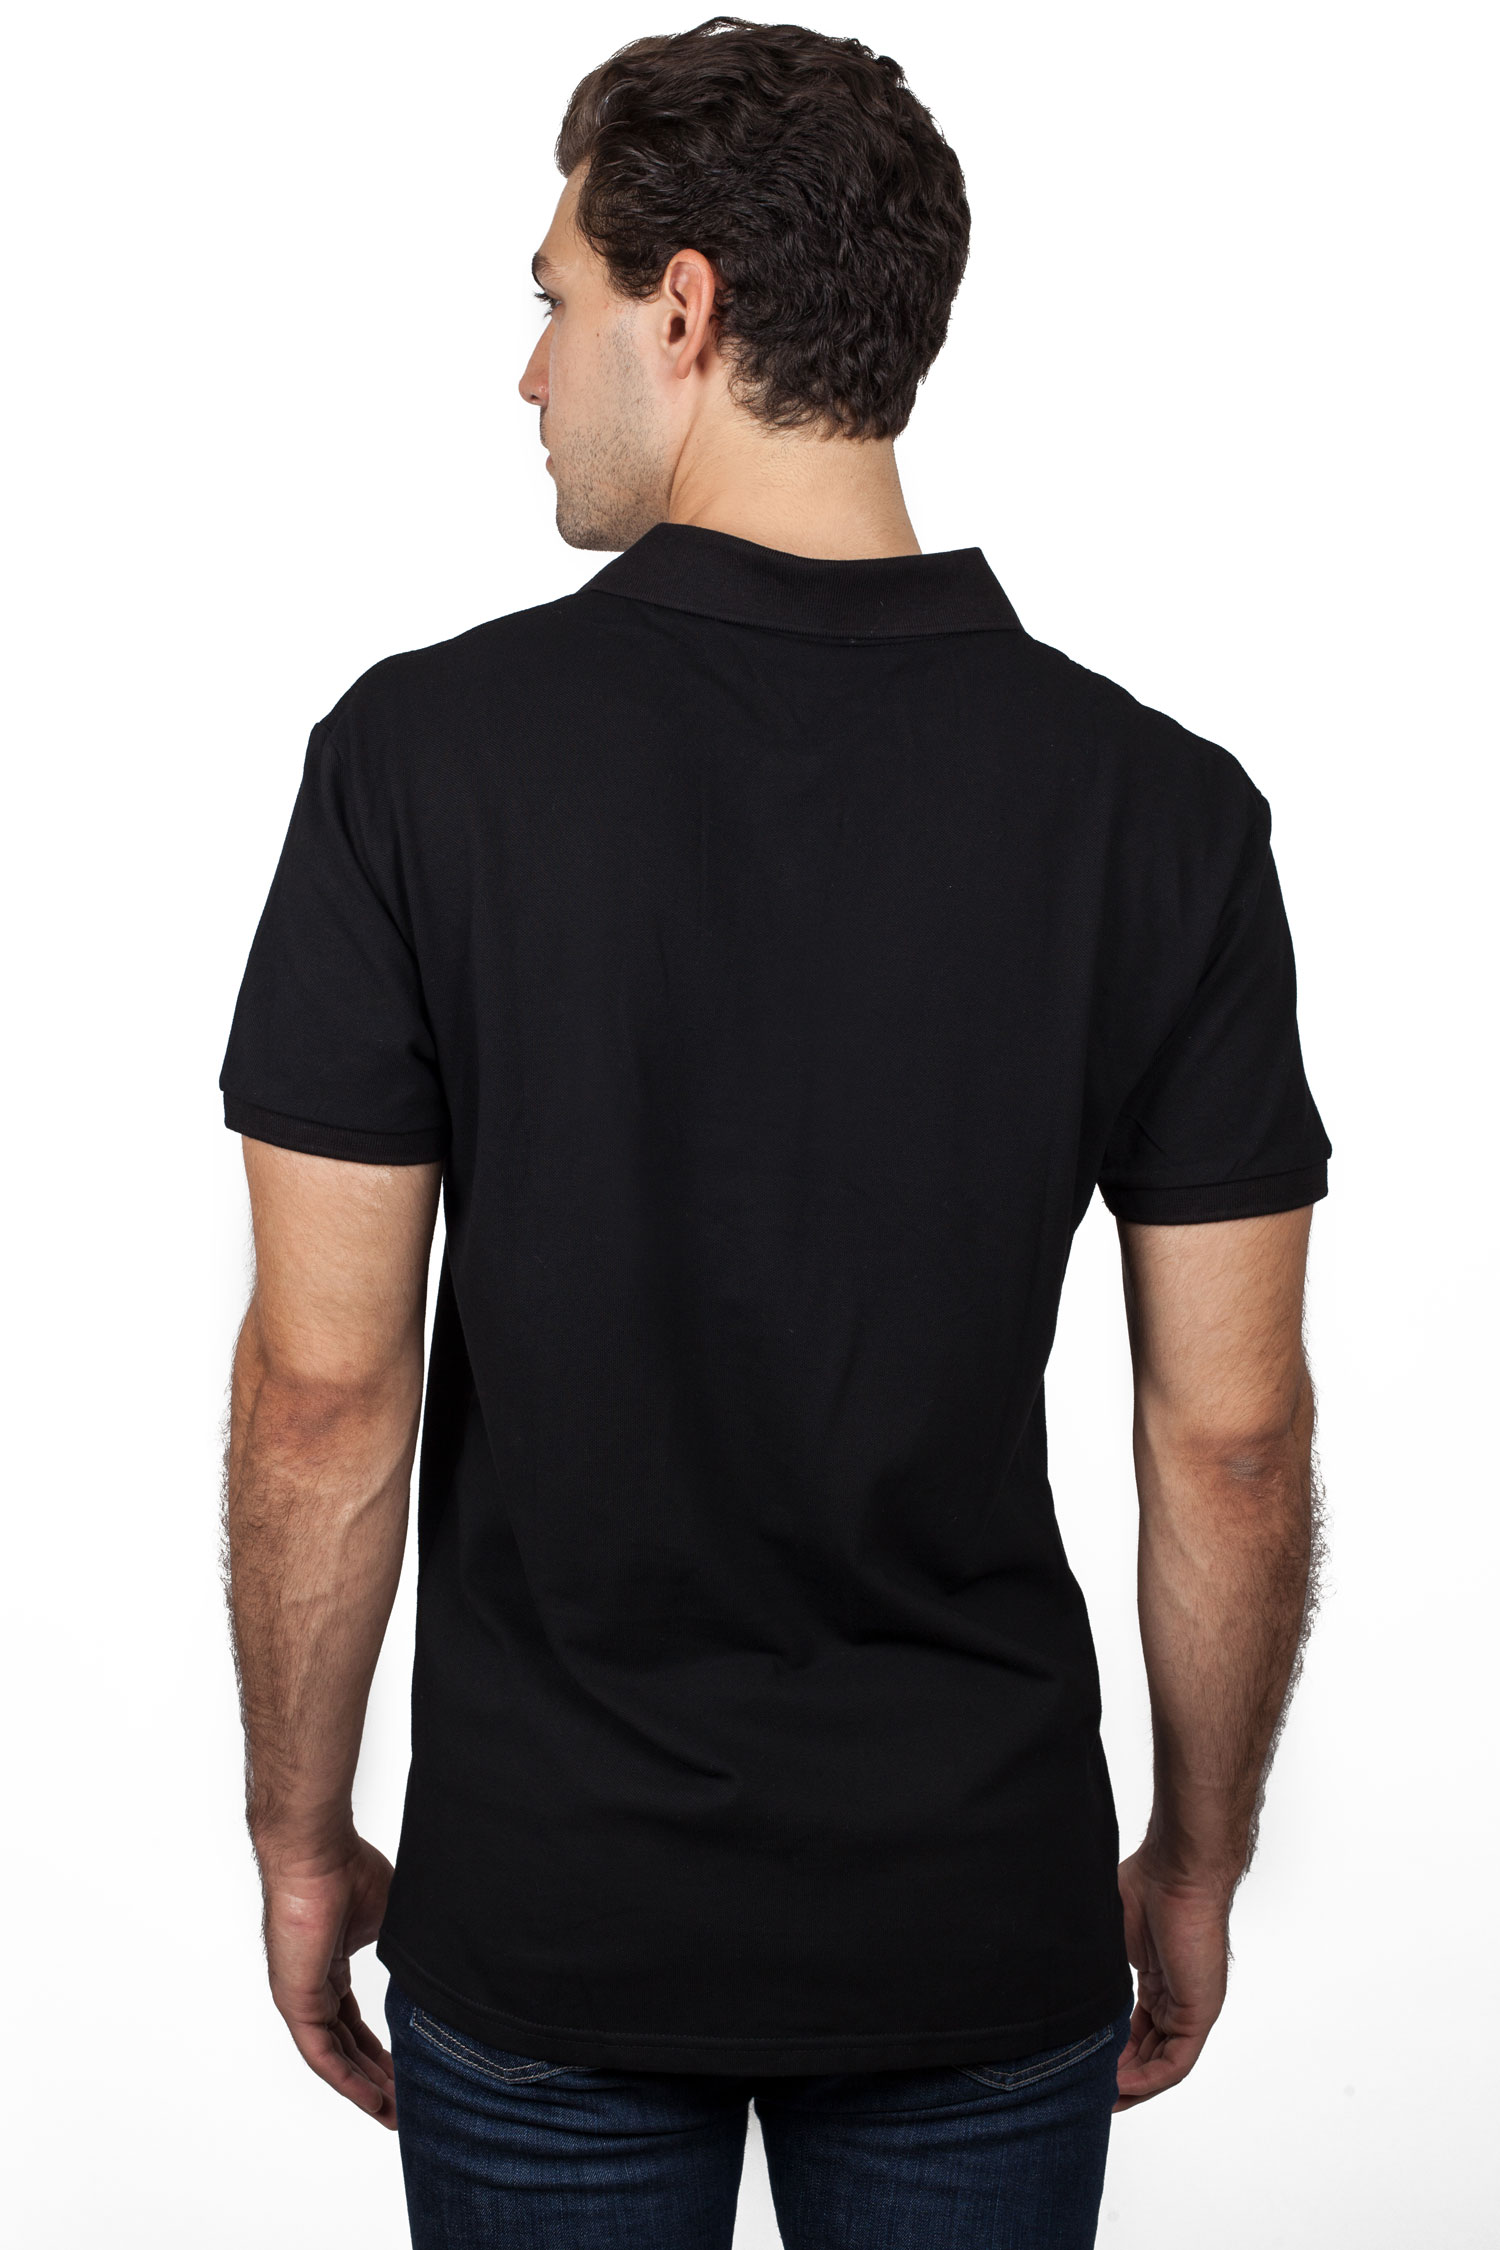 Black Polo Shirt with Old Gold SAE Greek Letters